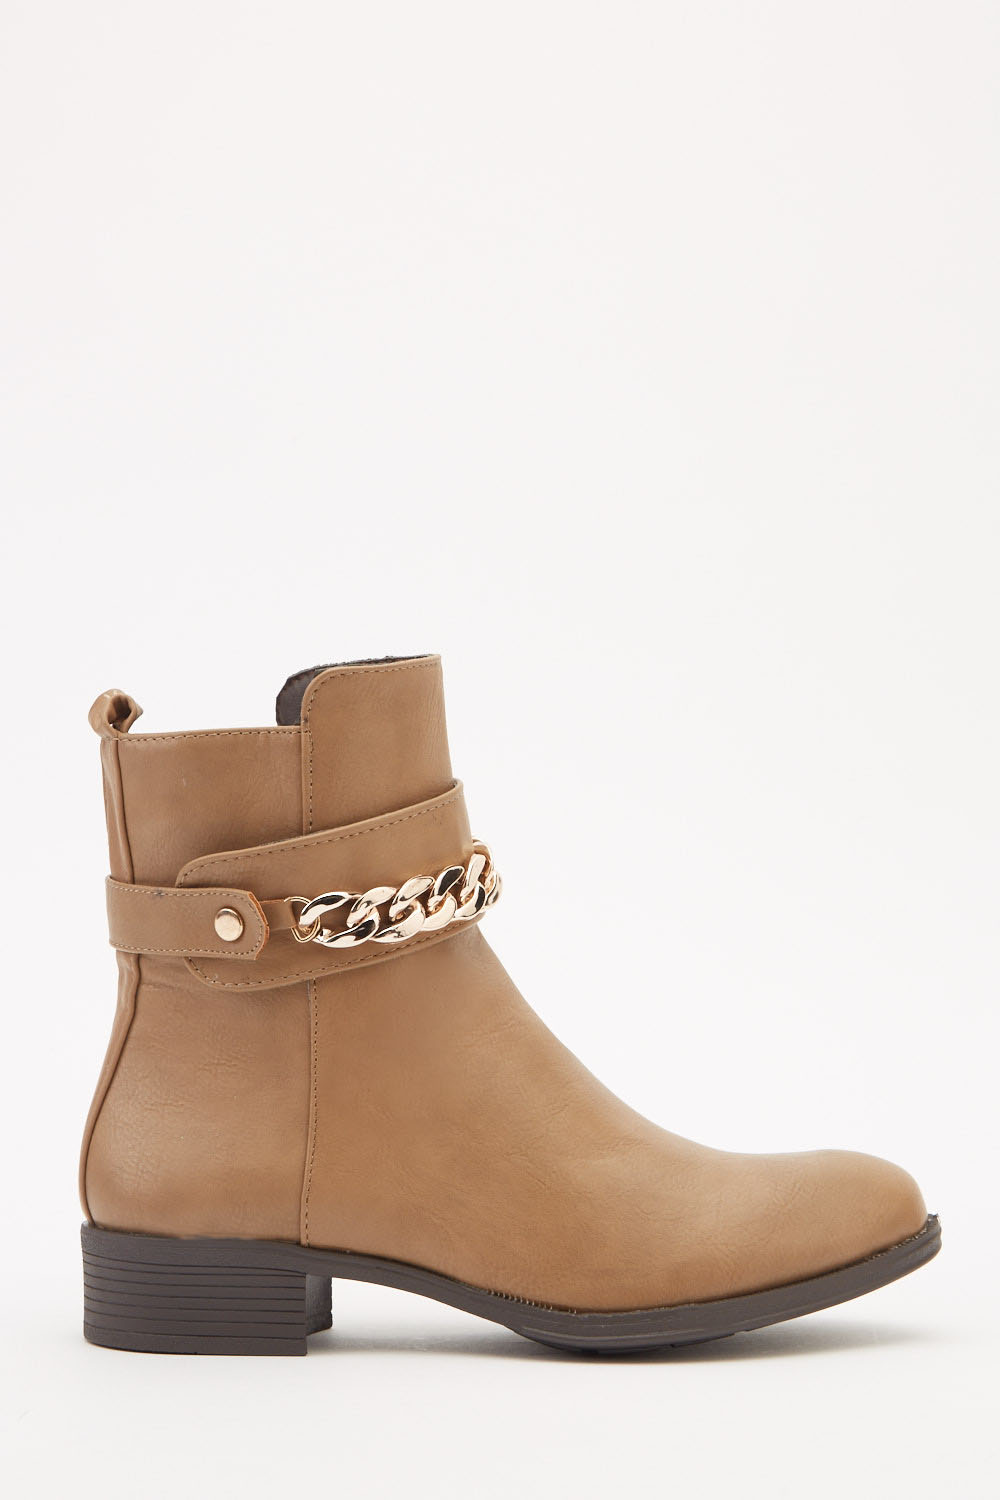 f6b2001bd28 Chain Detailed Ankle Boots - Just £5